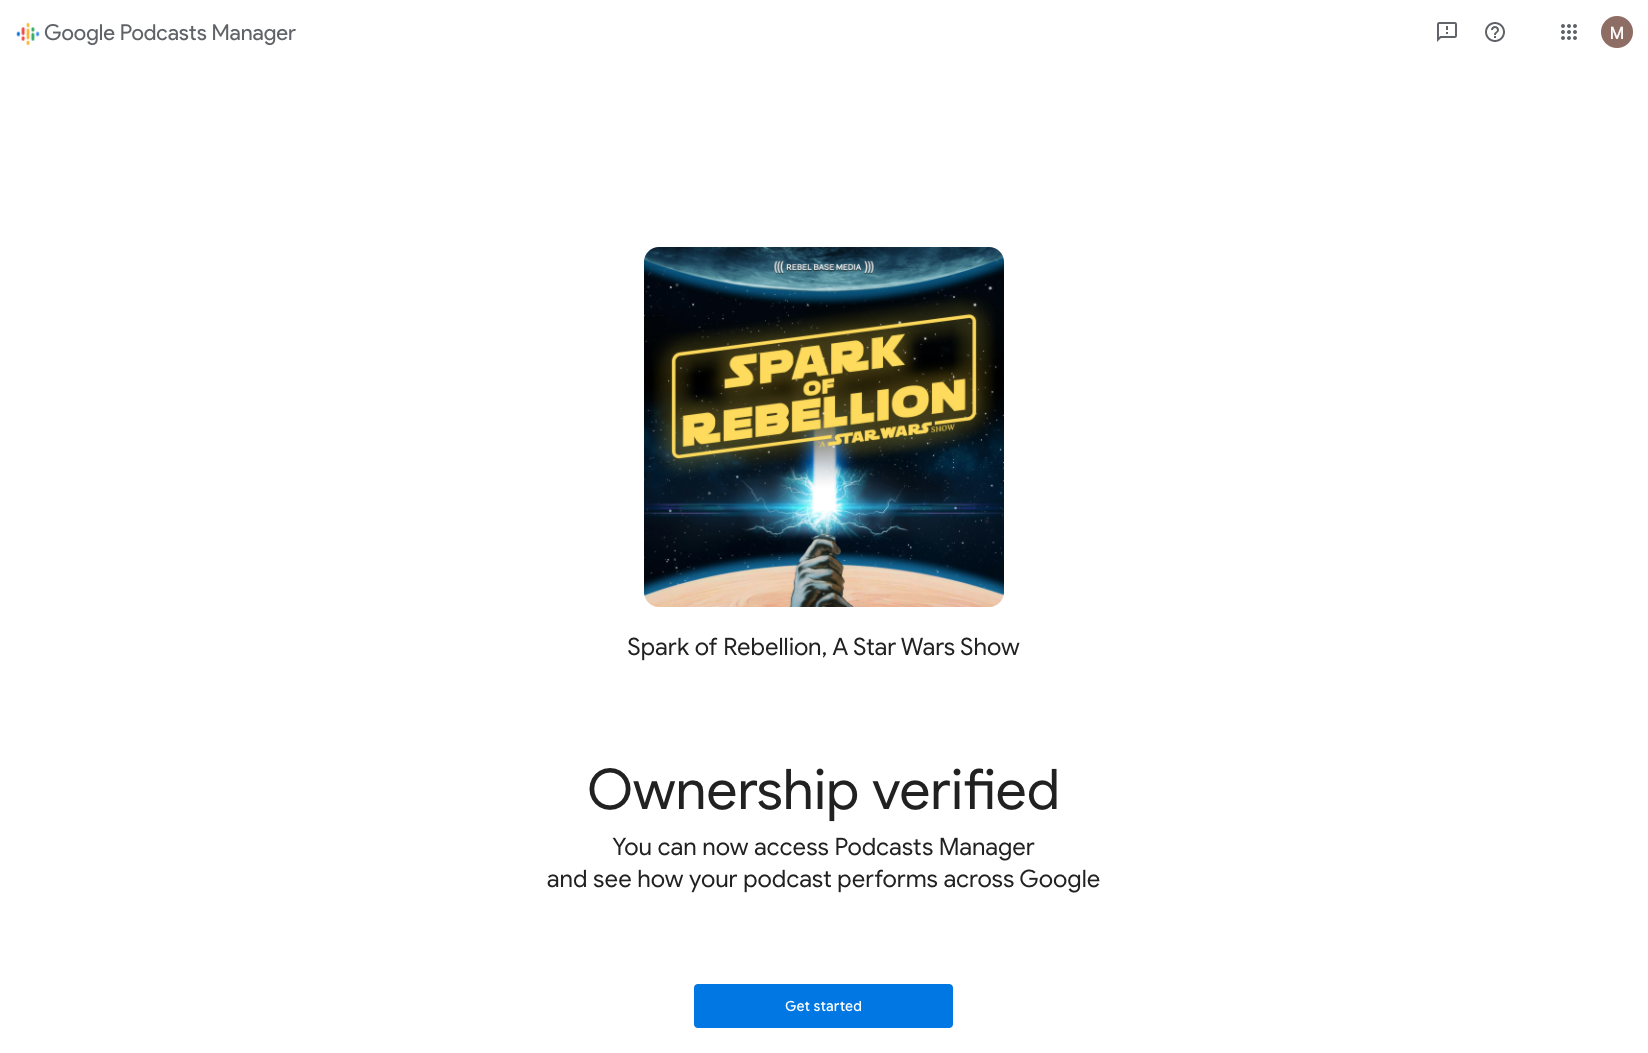 A screenshot showing the successful verification of Spark of Rebellion podcast in Google Podcasts Manager.